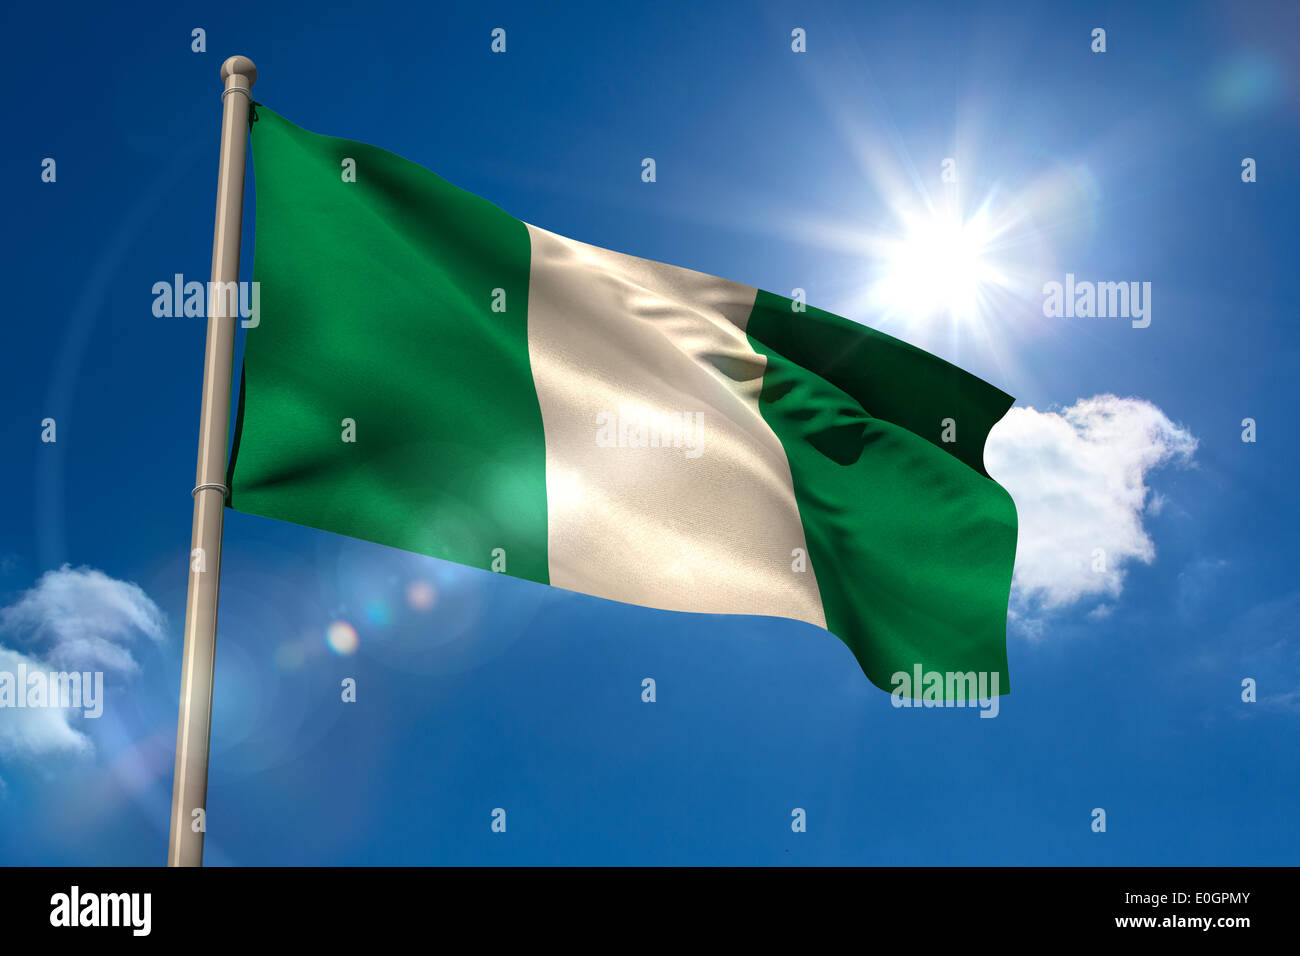 Nigeria national flag on flagpole - Stock Image